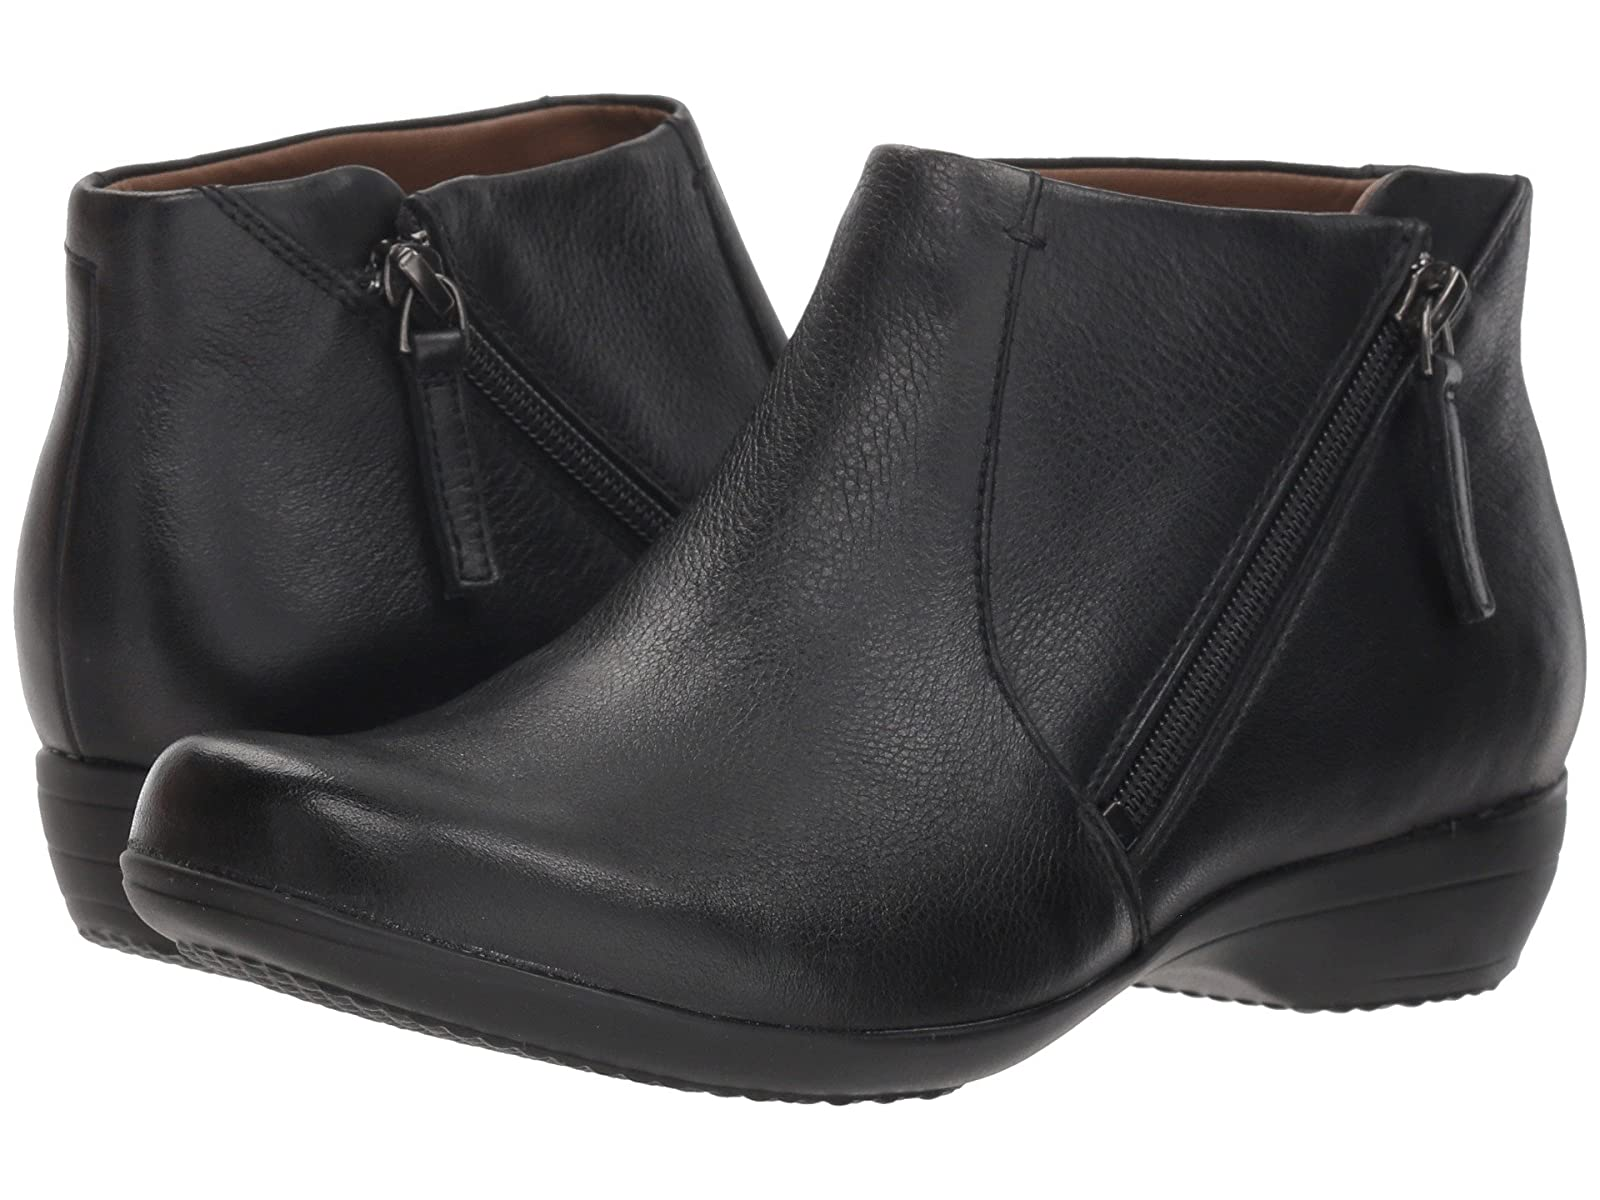 Dansko FifiAffordable and distinctive shoes